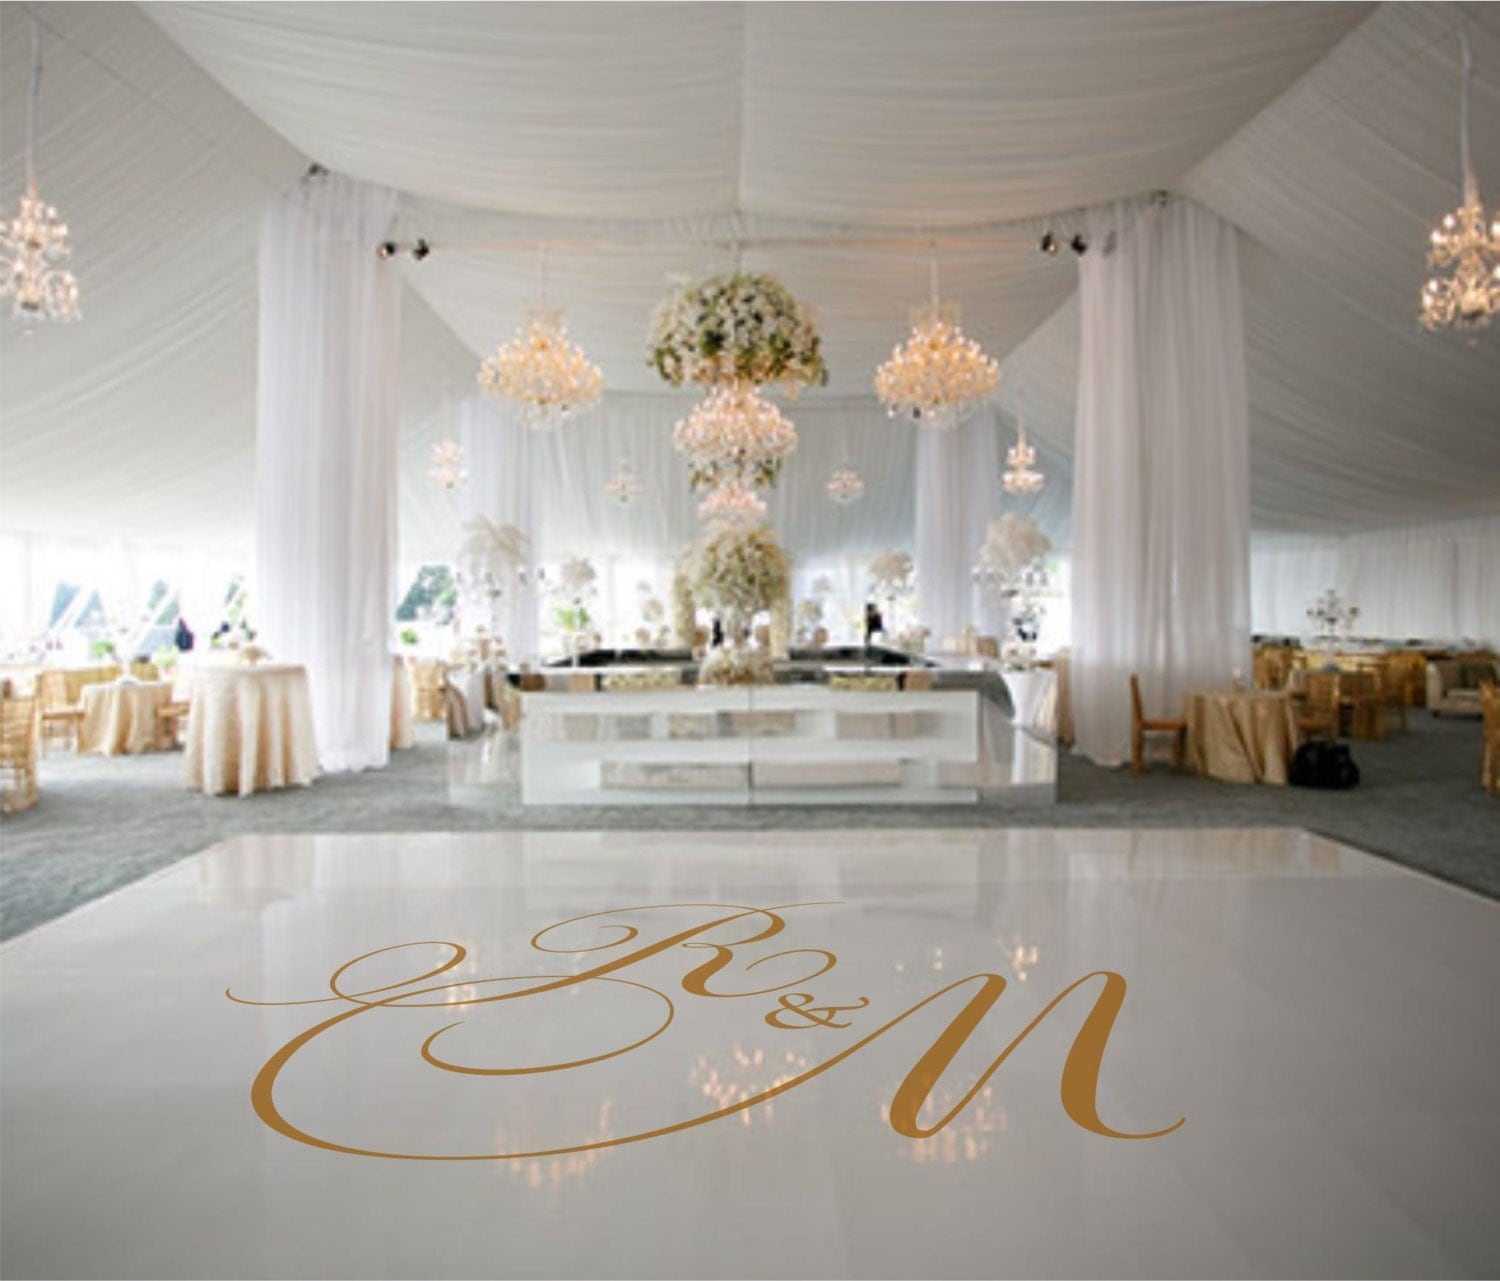 Dance floor decal wedding decor wedding decoration monogram for Decorations for weddings at home